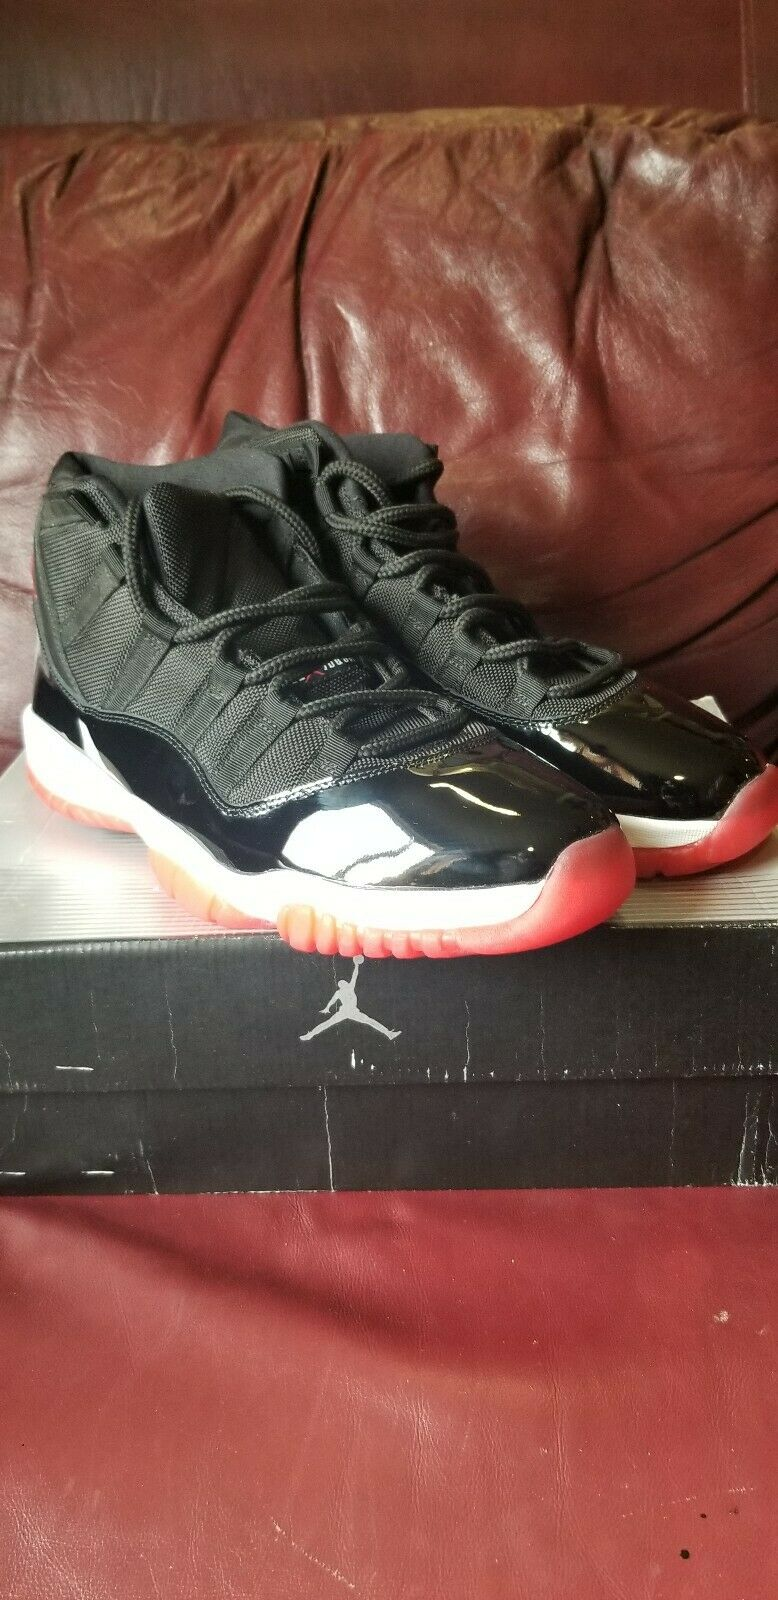 Air Jordan 11 Bred size 11 Ds (Rare) 100% authentic 2001 II XII XIII XIV V IV IX